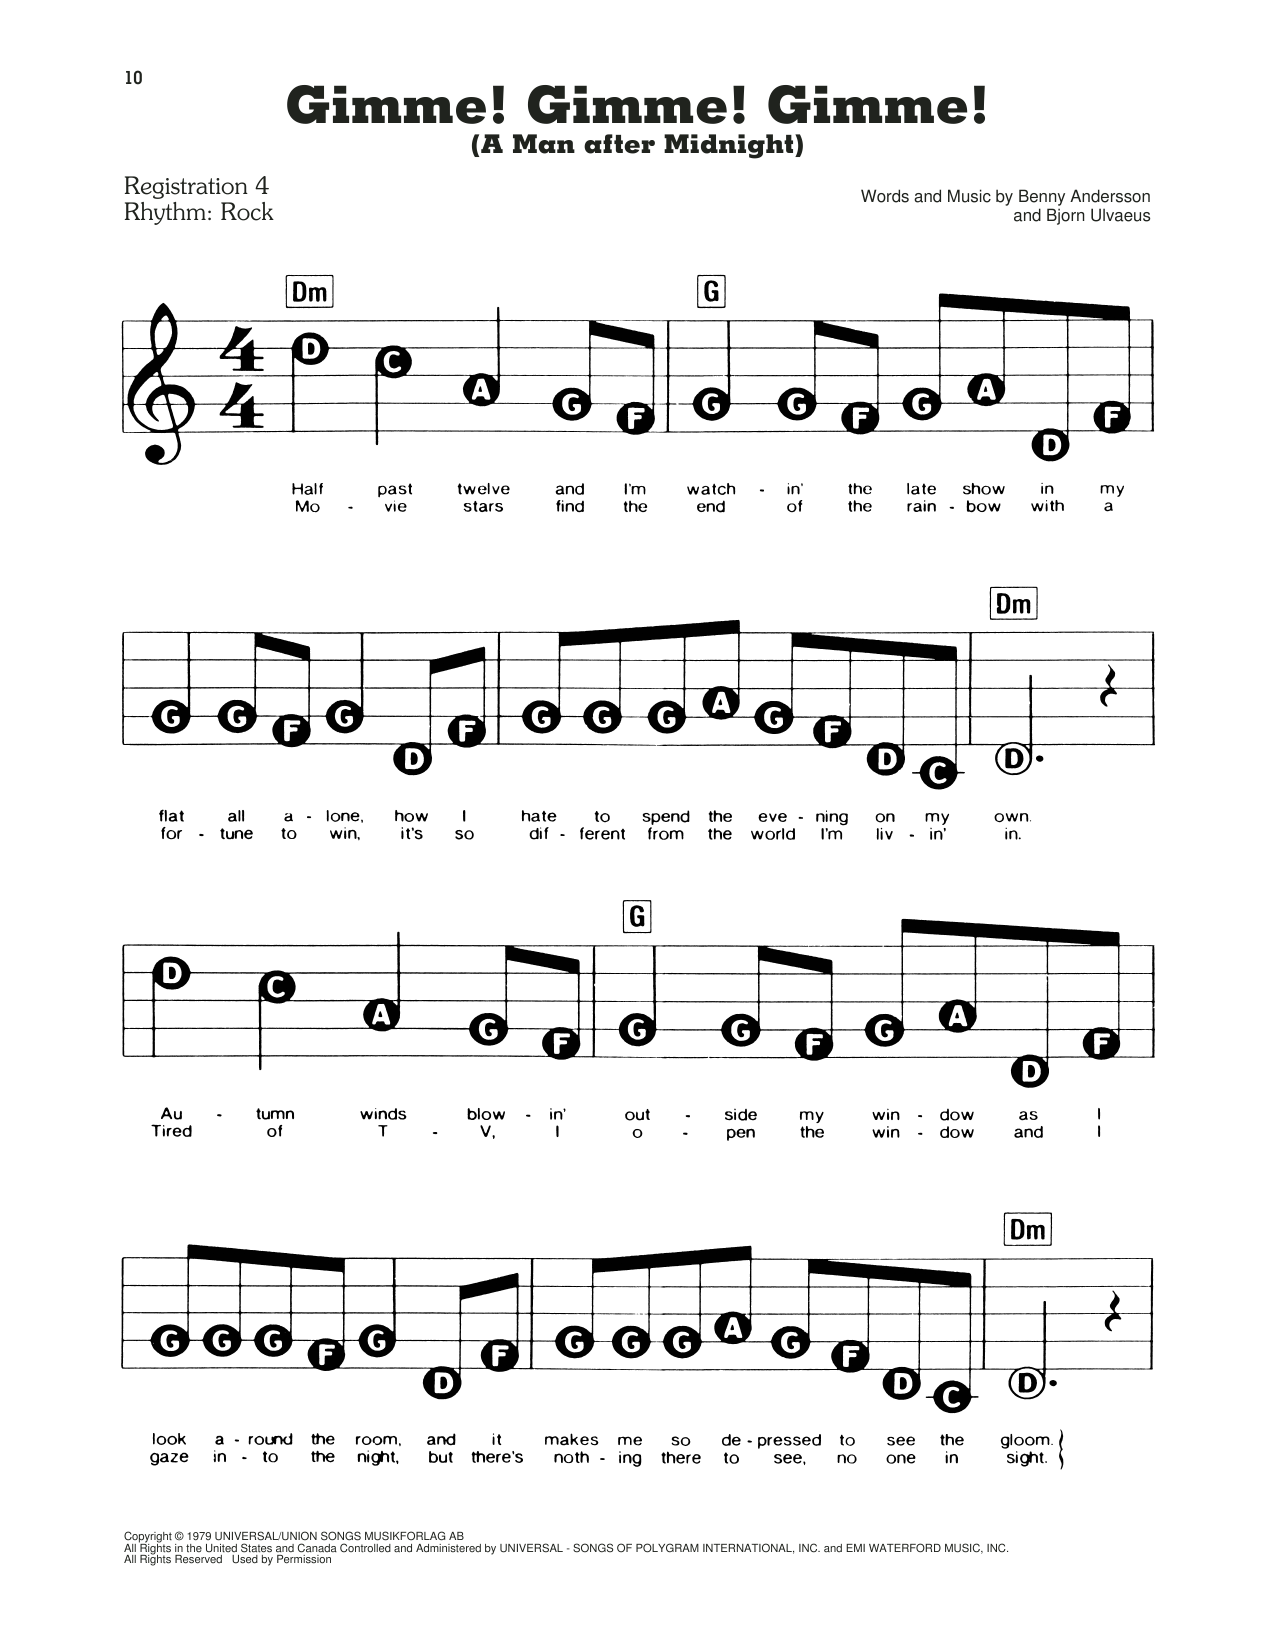 ABBA Gimme! Gimme! Gimme! (A Man After Midnight) (from Mamma Mia!) sheet music notes and chords. Download Printable PDF.